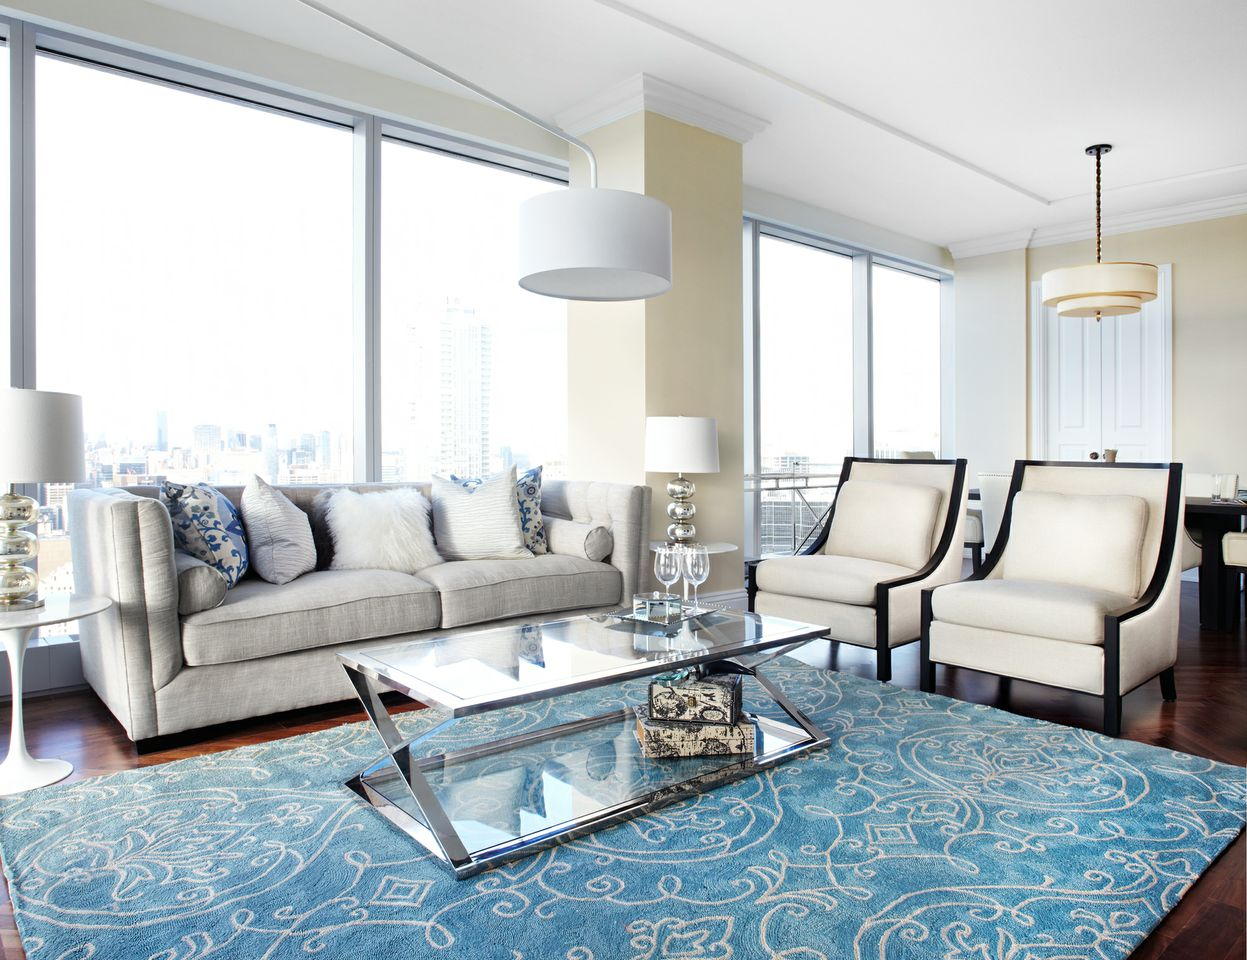 ritz-carlton-residences-by-lux-design-03